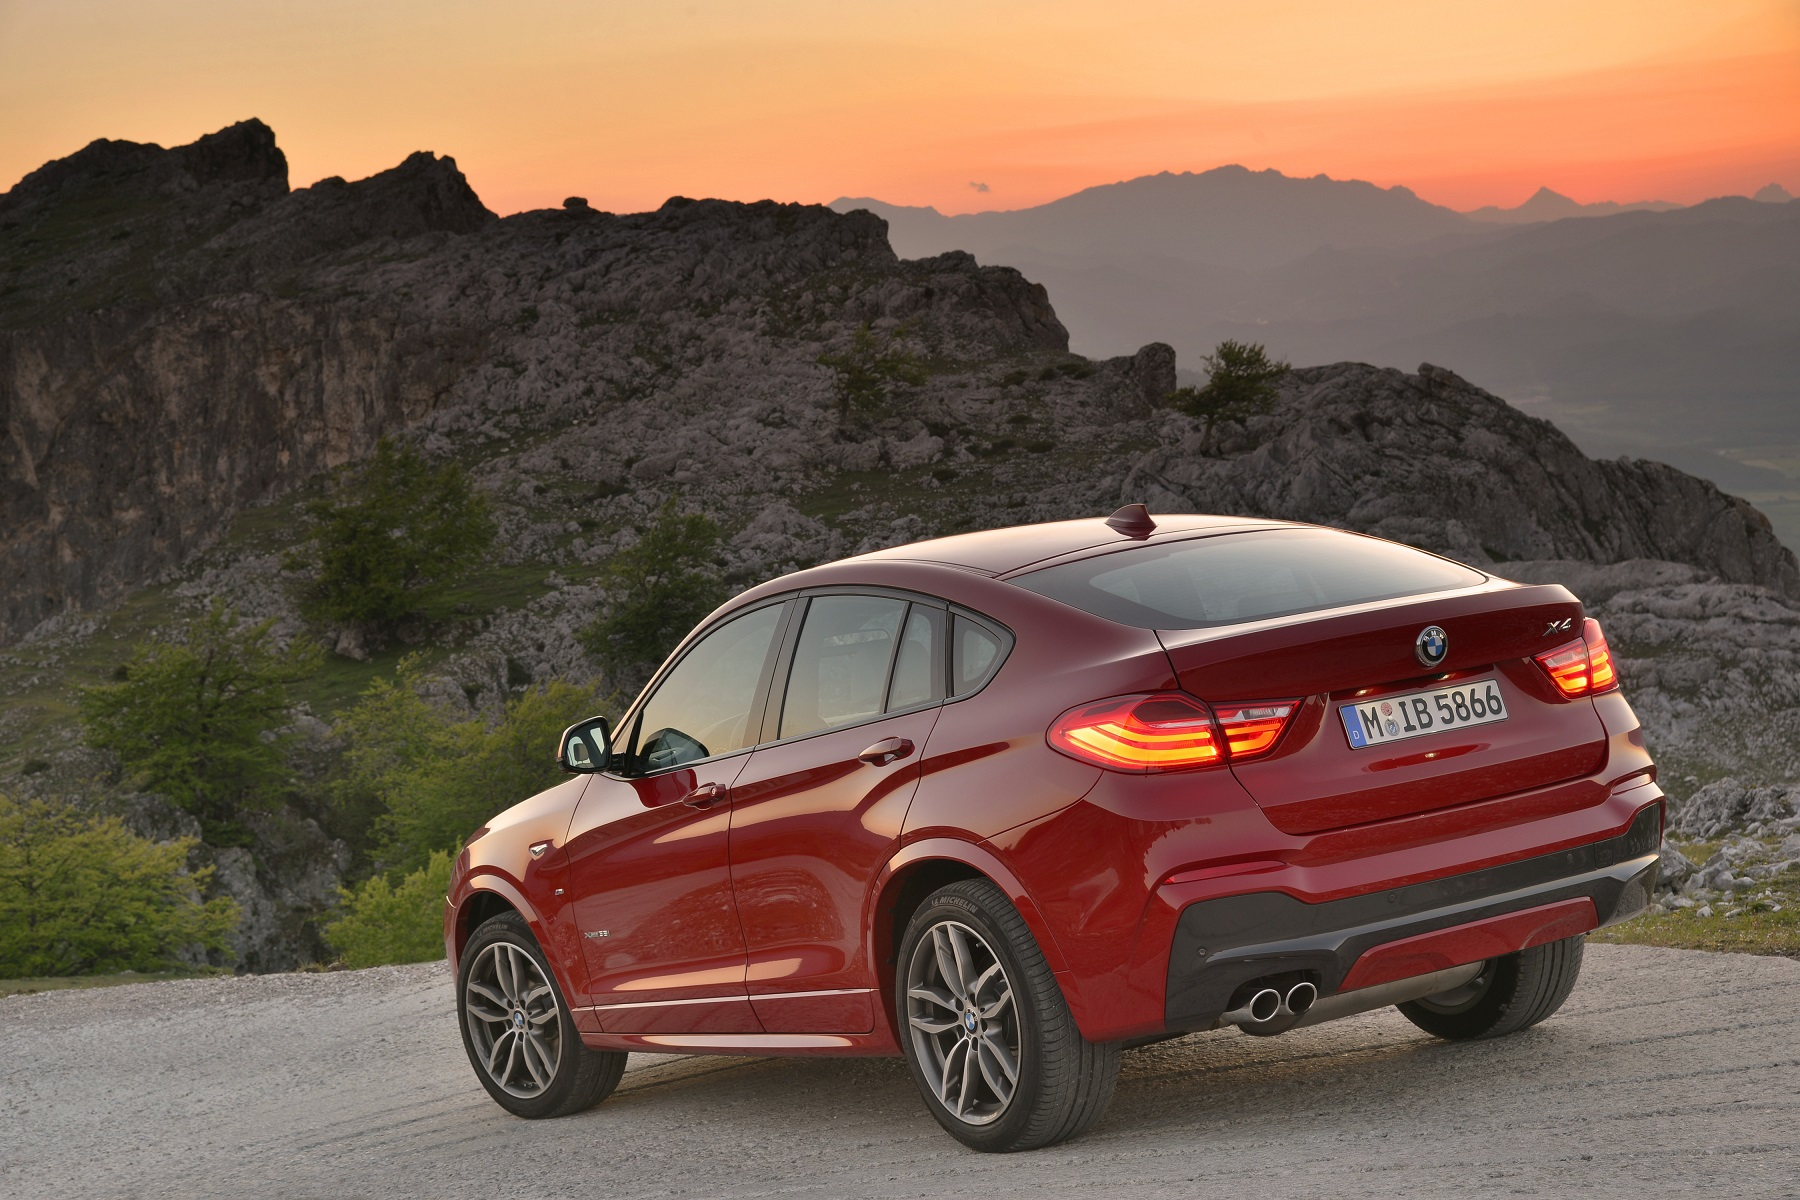 Manufacturer photo: The 2015 BMW X4 offers the premium midsize segment its first taste of the Sports Activity Coupe